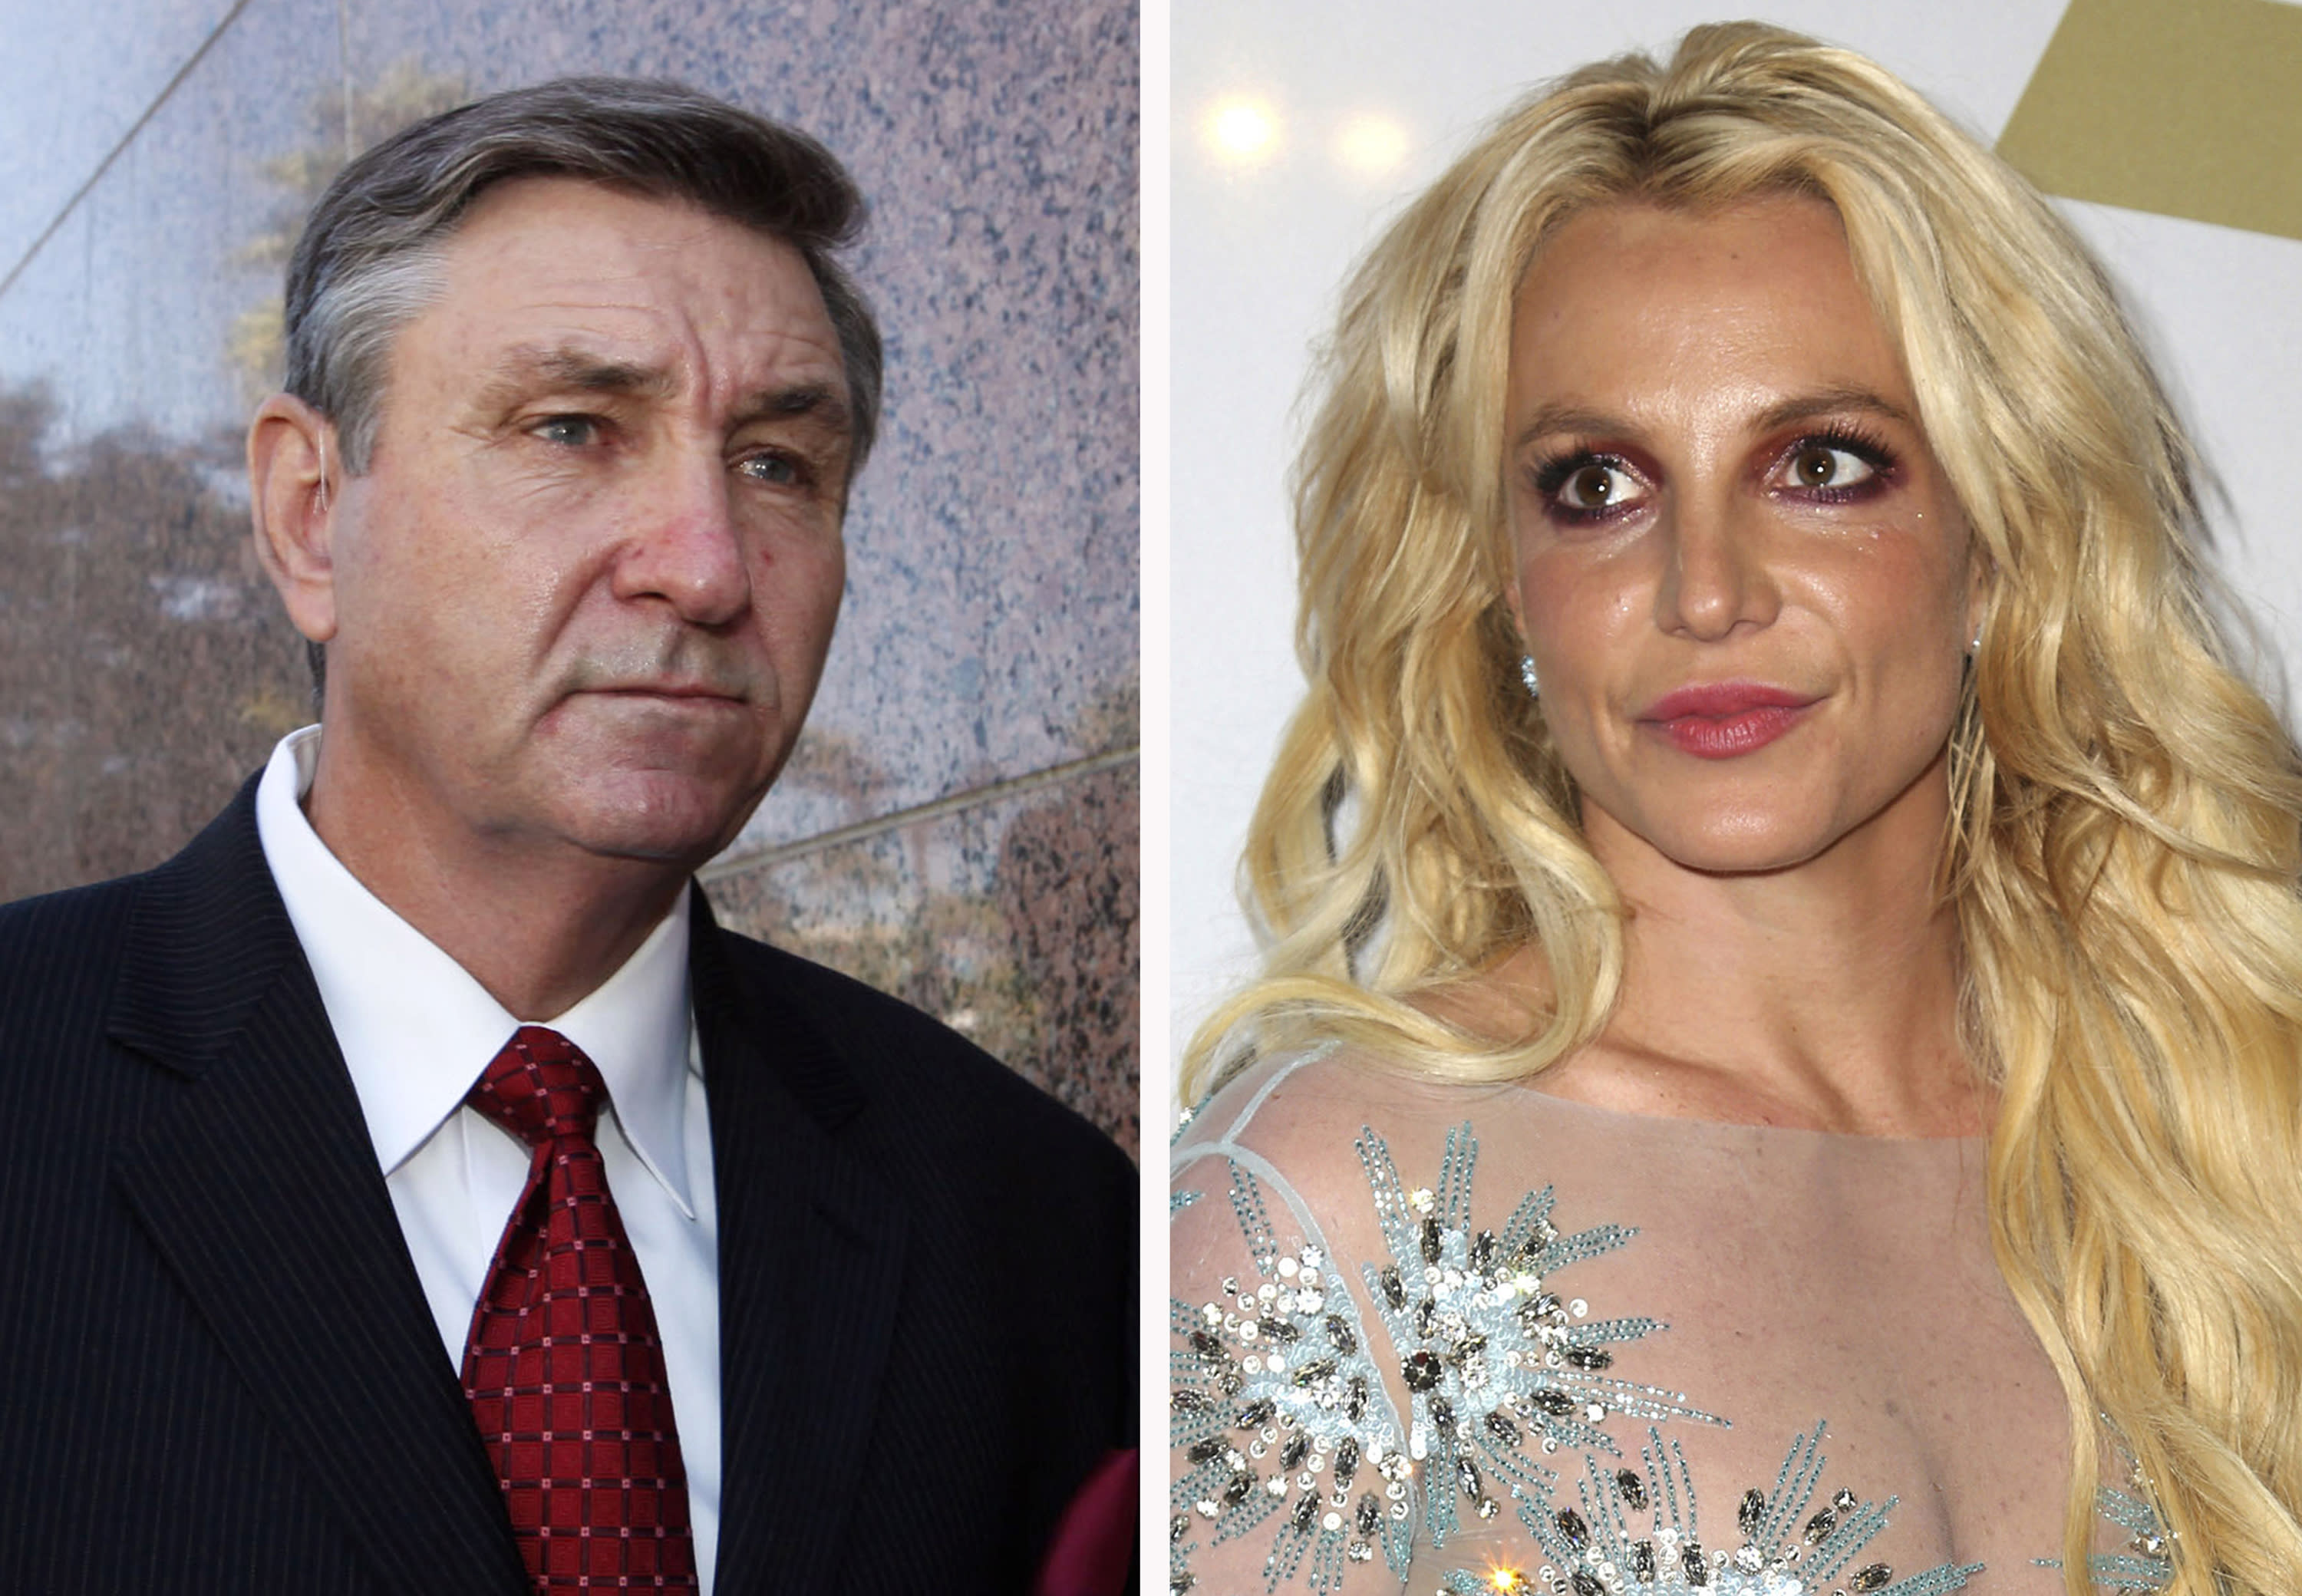 Britney Spears wants to oust her father as sole conservator